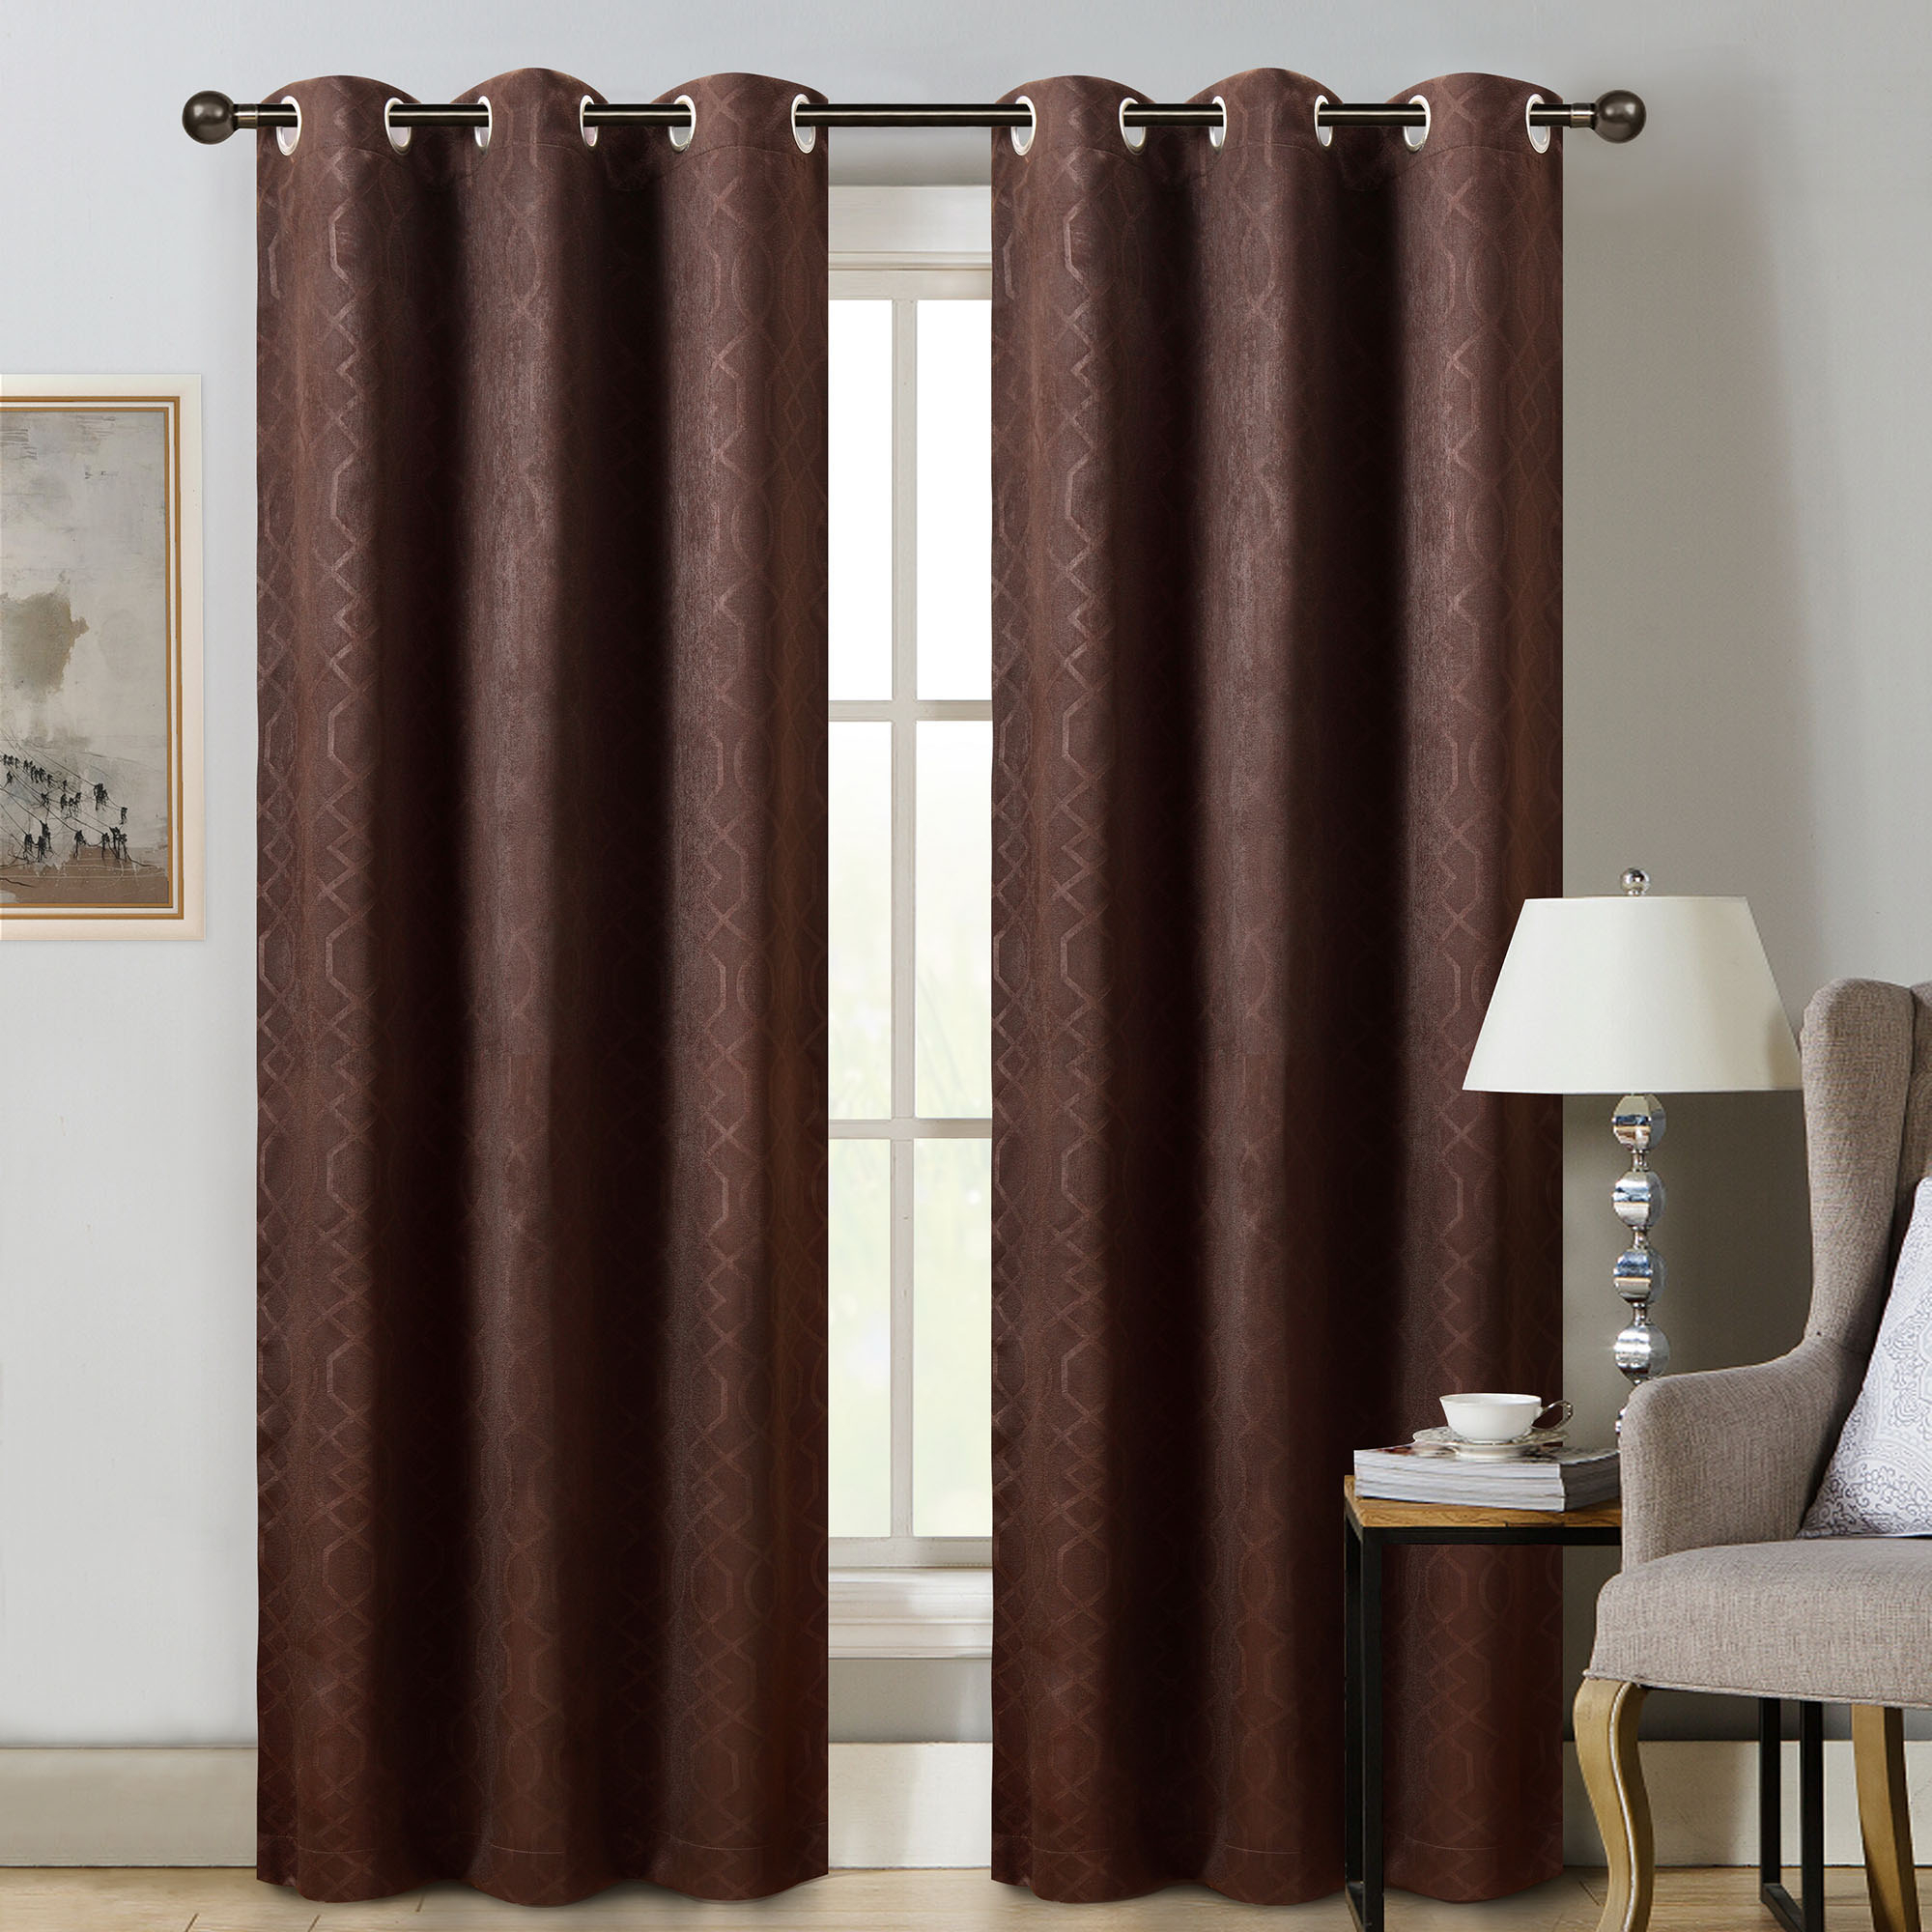 """Sun+blk Thermal Weave Embossed Blackout Grommet Single Curtain Panel 42""""x84"""" – Walmart With Regard To Popular Embossed Thermal Weaved Blackout Grommet Drapery Curtains (View 12 of 20)"""